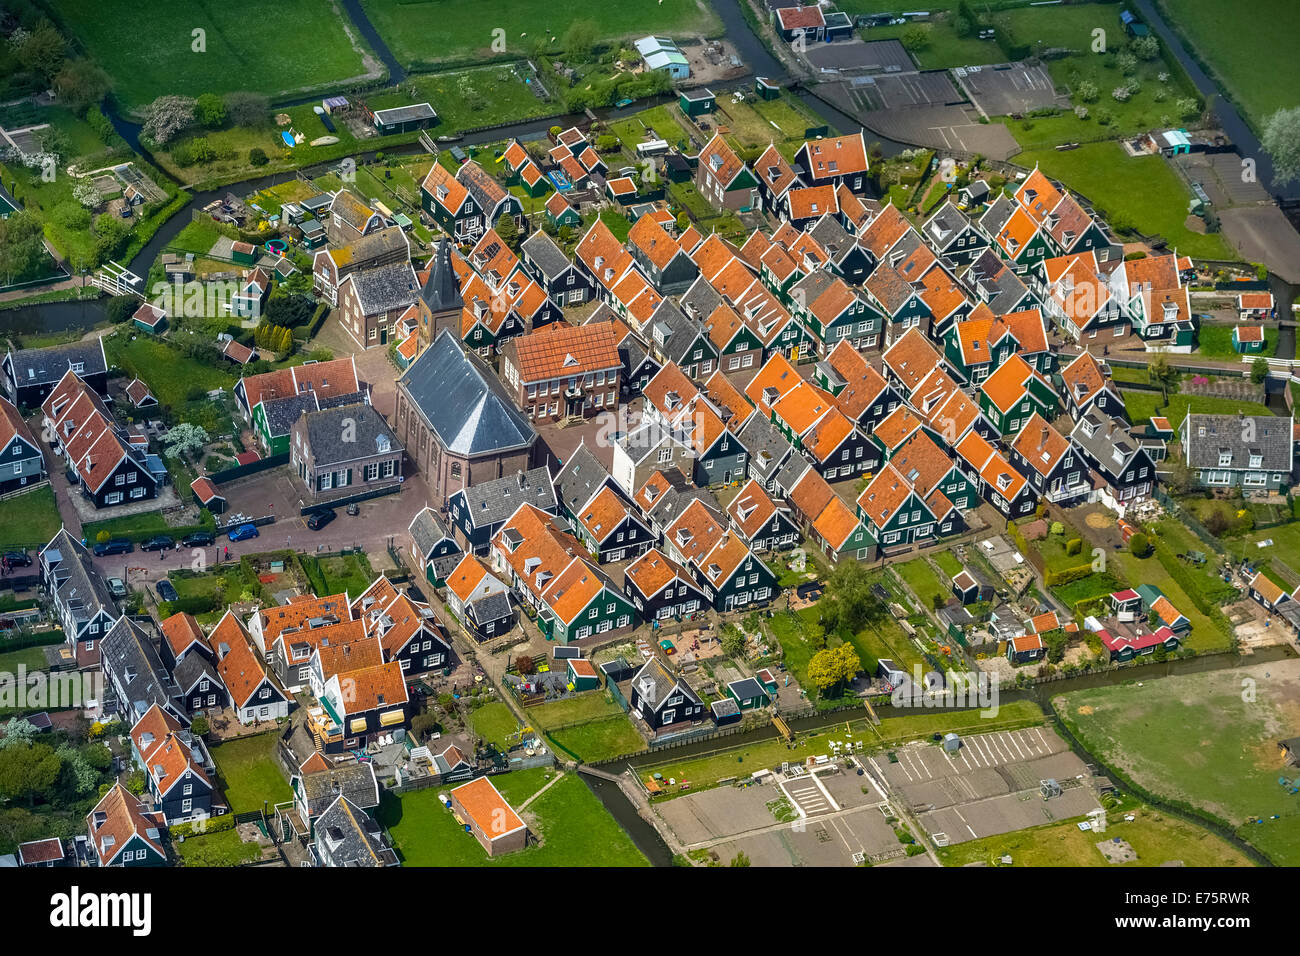 Aerial view, fishermen's houses on the Marken peninsula, Province of North-Holland, Netherlands - Stock Image